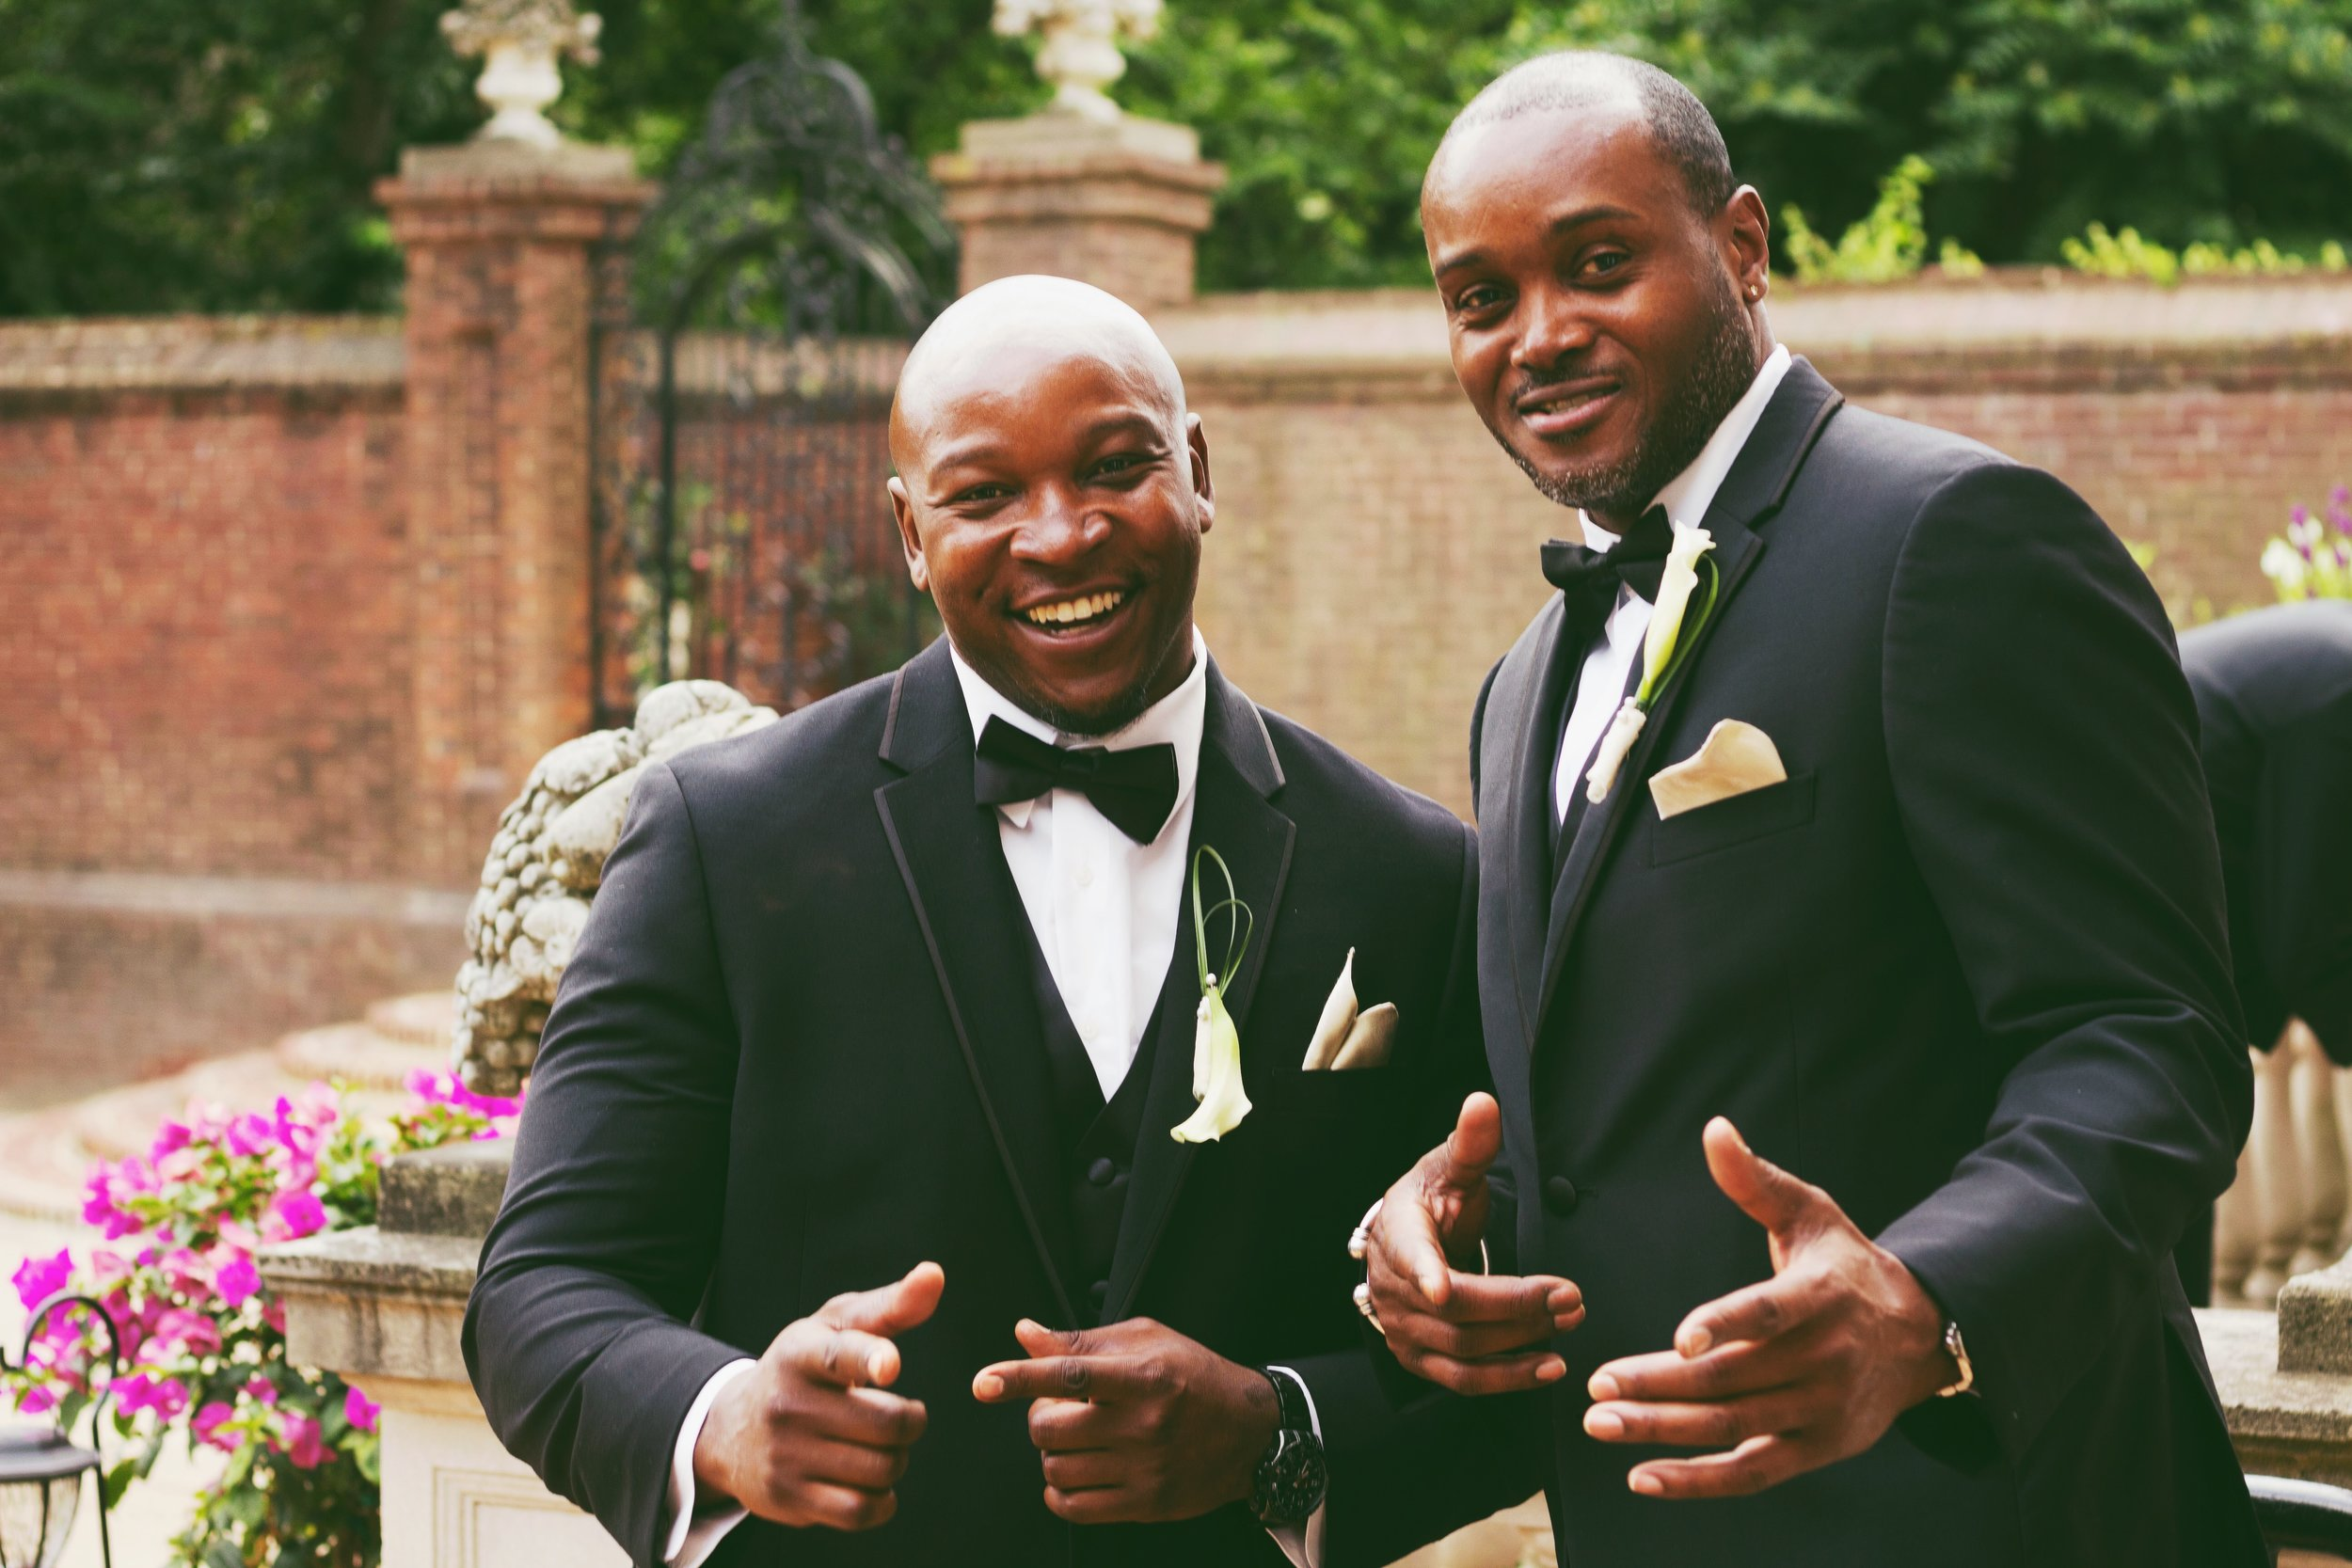 DC_Wedding_Groomsmen_Black Men.jpg